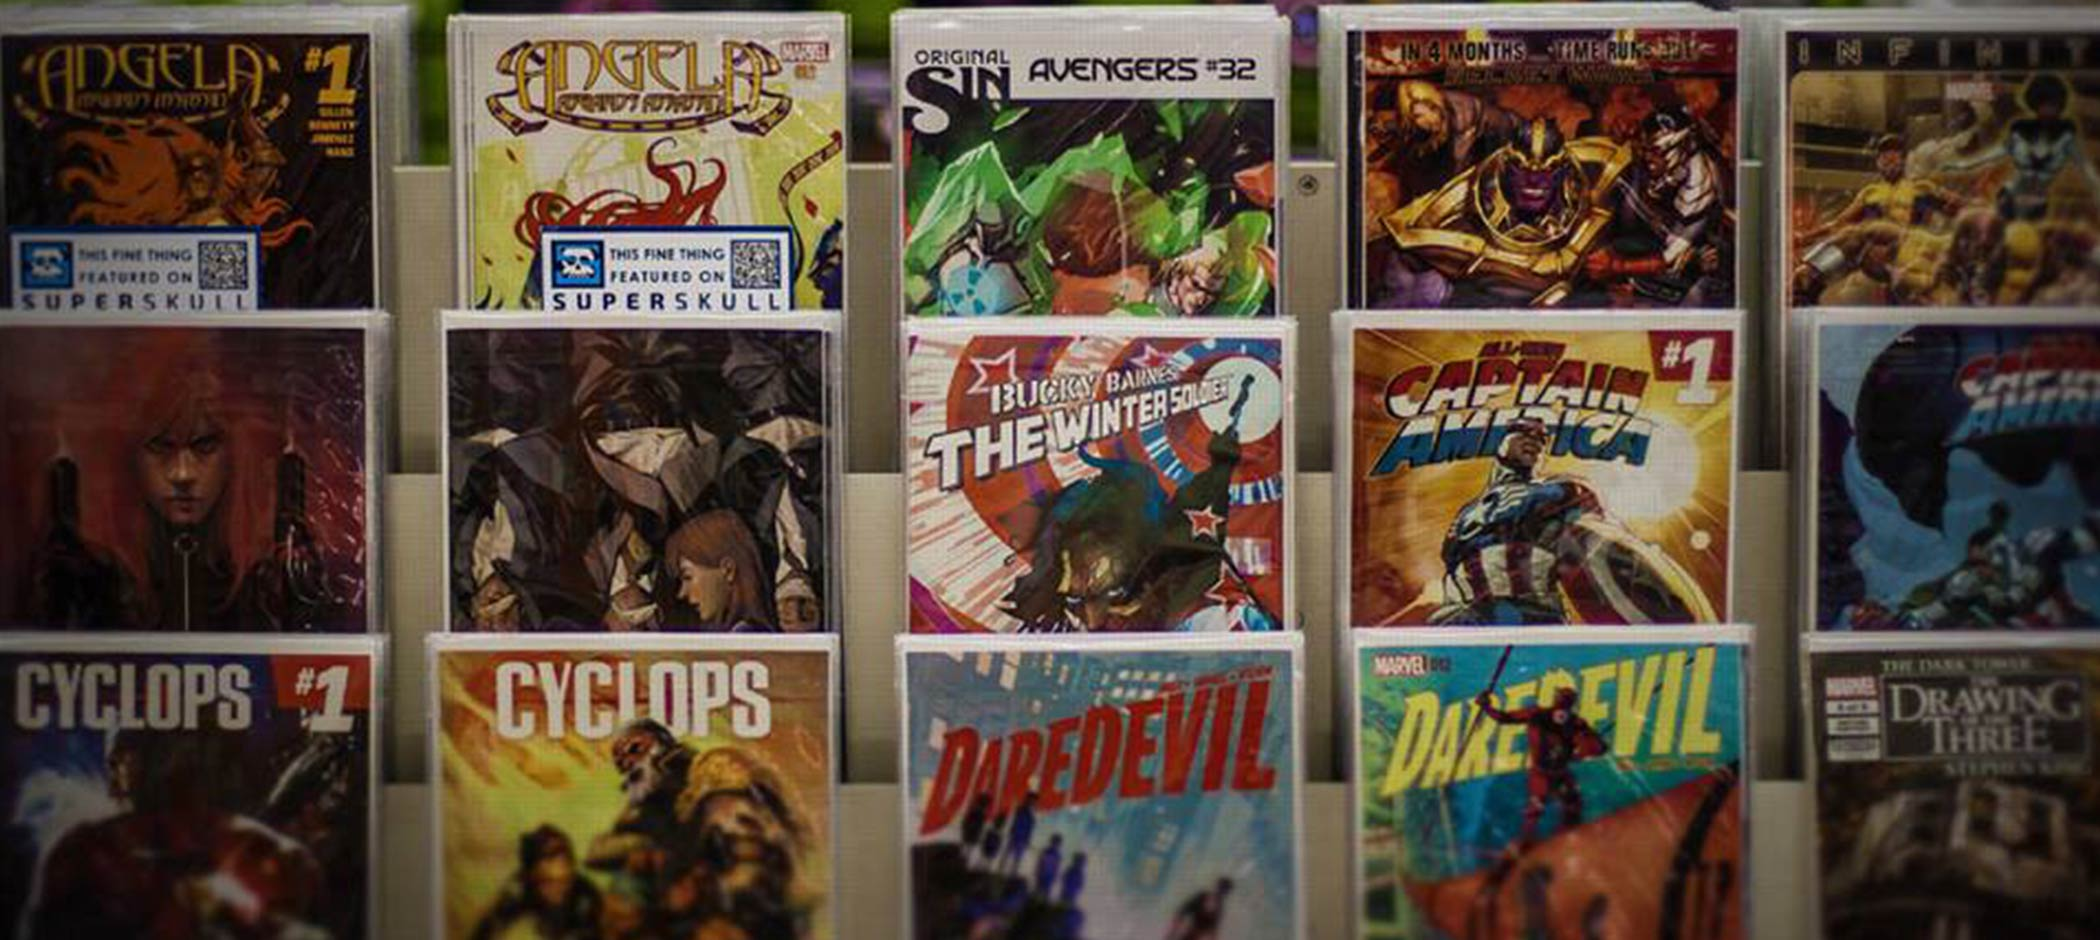 Vault at Midnight comic books